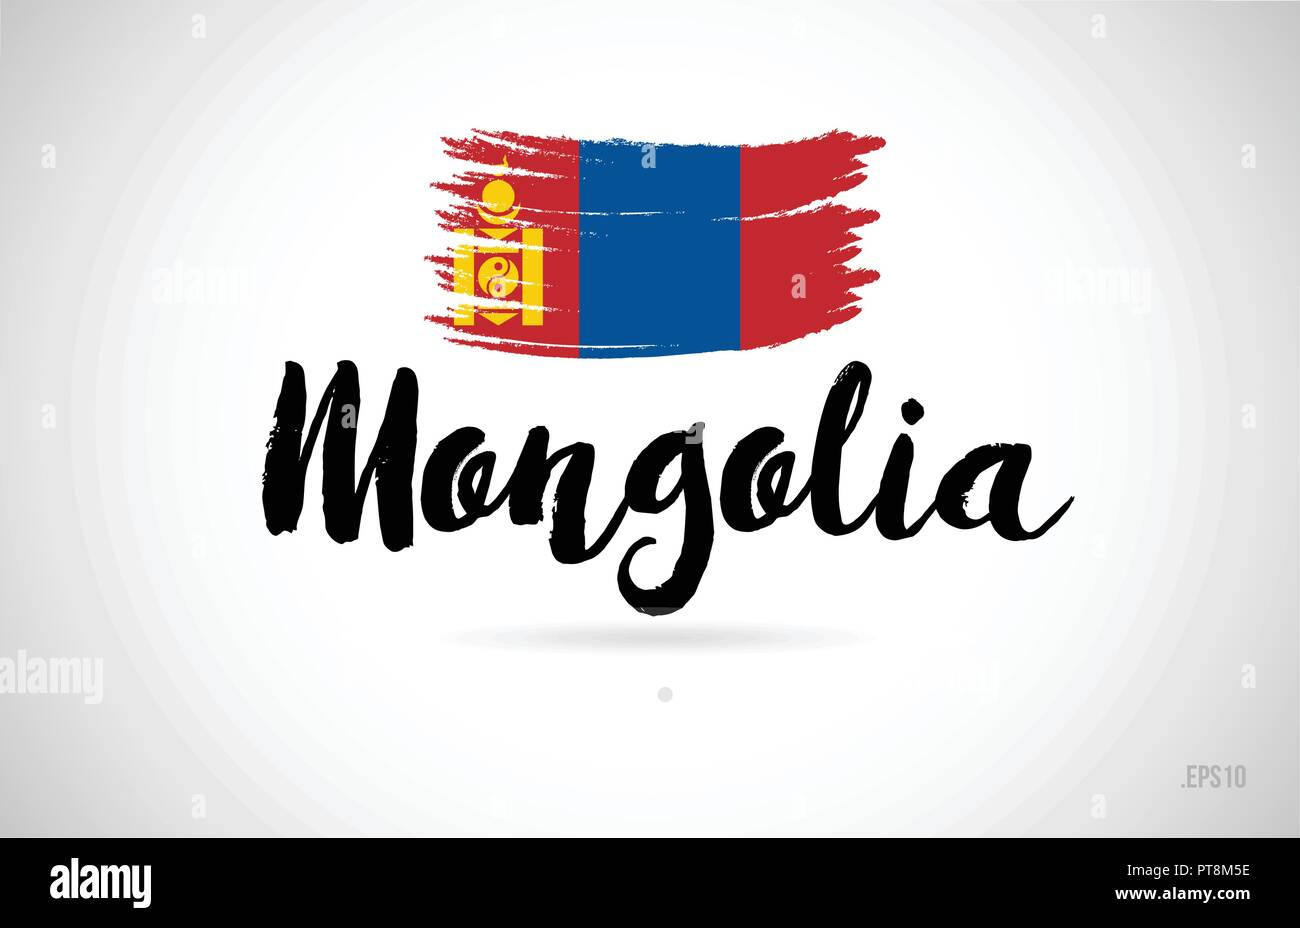 mongolia country flag concept with grunge design suitable for a logo icon design - Stock Vector